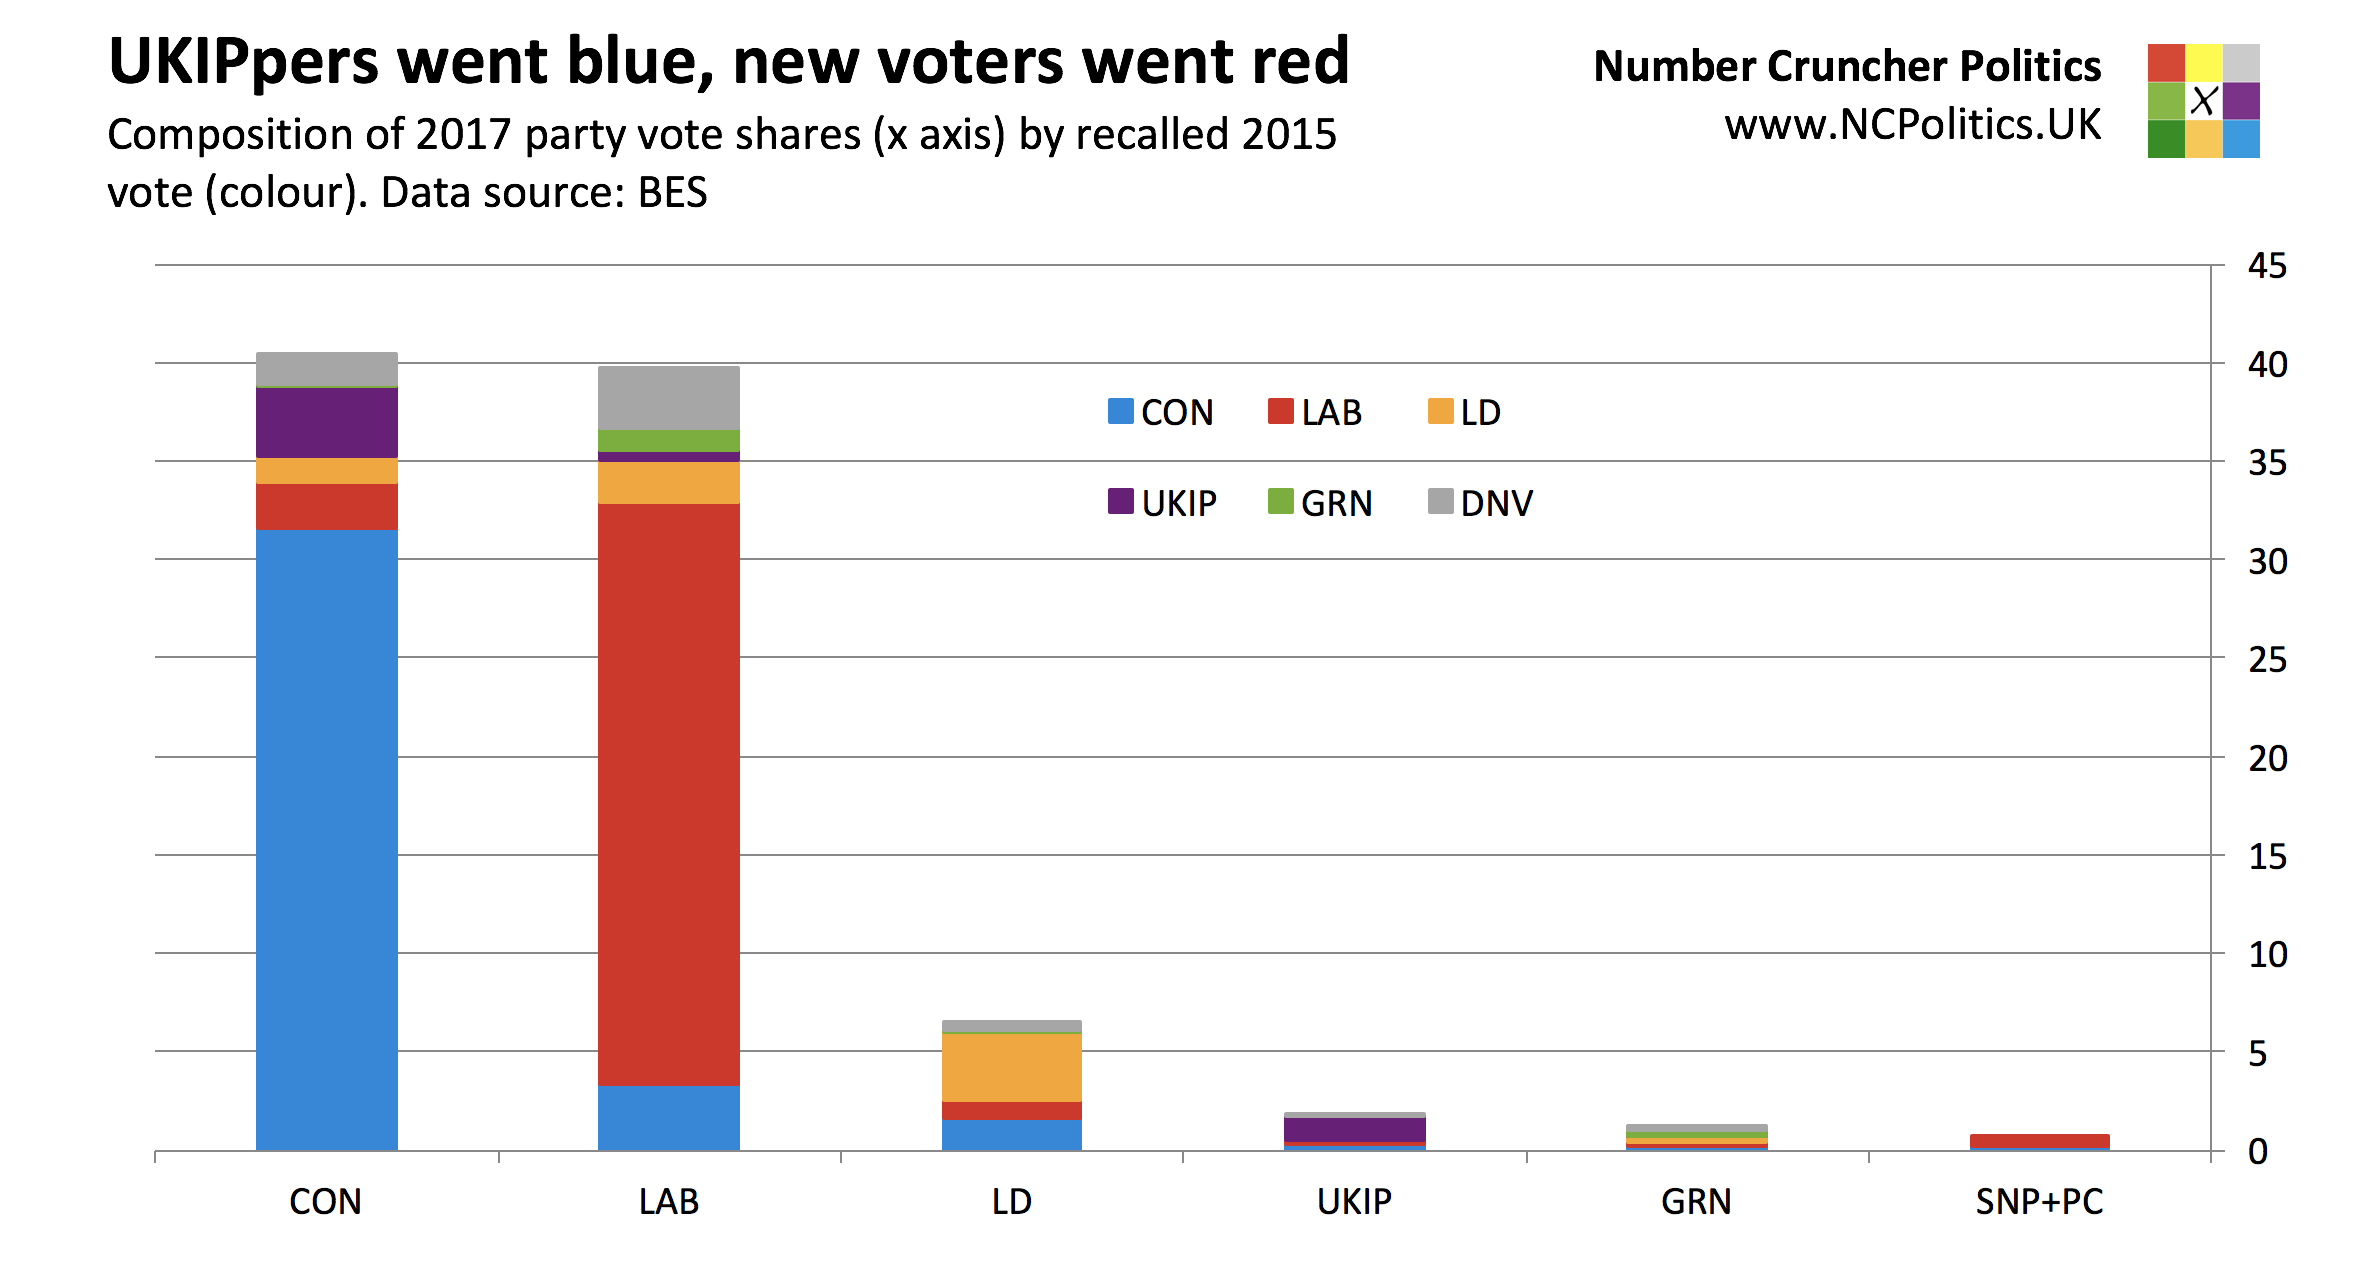 British Election Study 2017: UKIPpers went blue, new voters went red